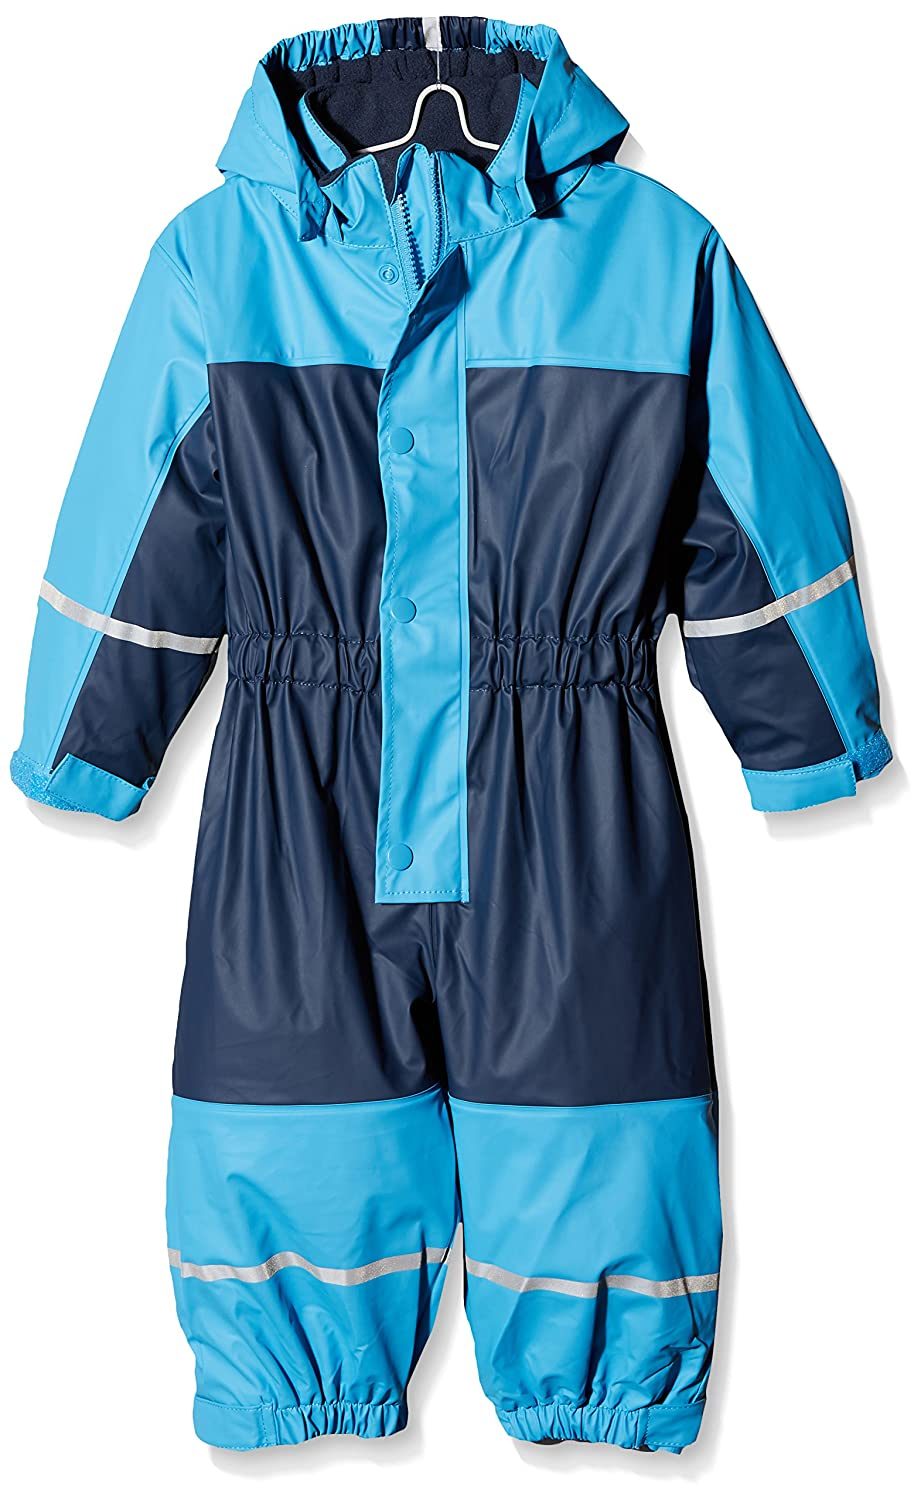 Playshoes Boy's Waterproof Fleece All-in-One Rainsuit with Reflectors 405401